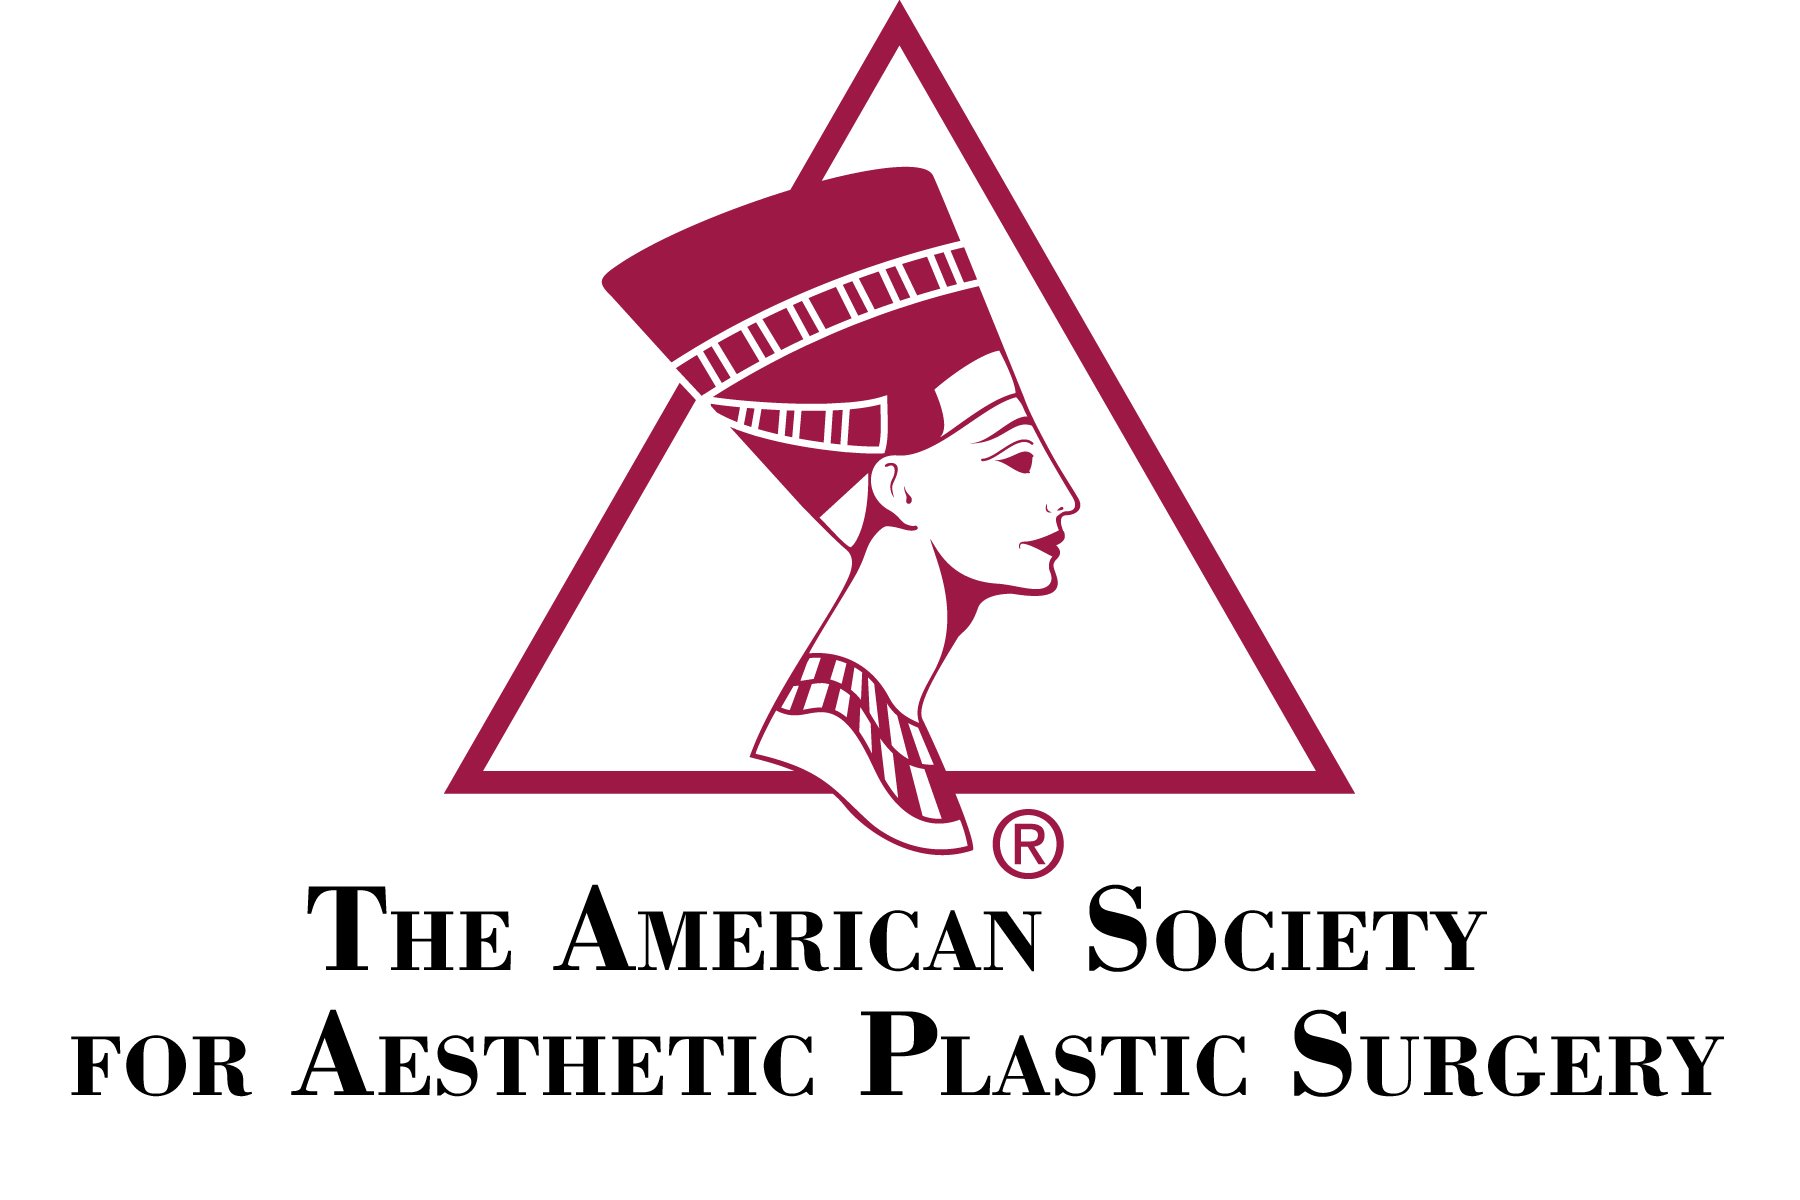 ASAPS American Society for Aesthetic Plastic Surgery